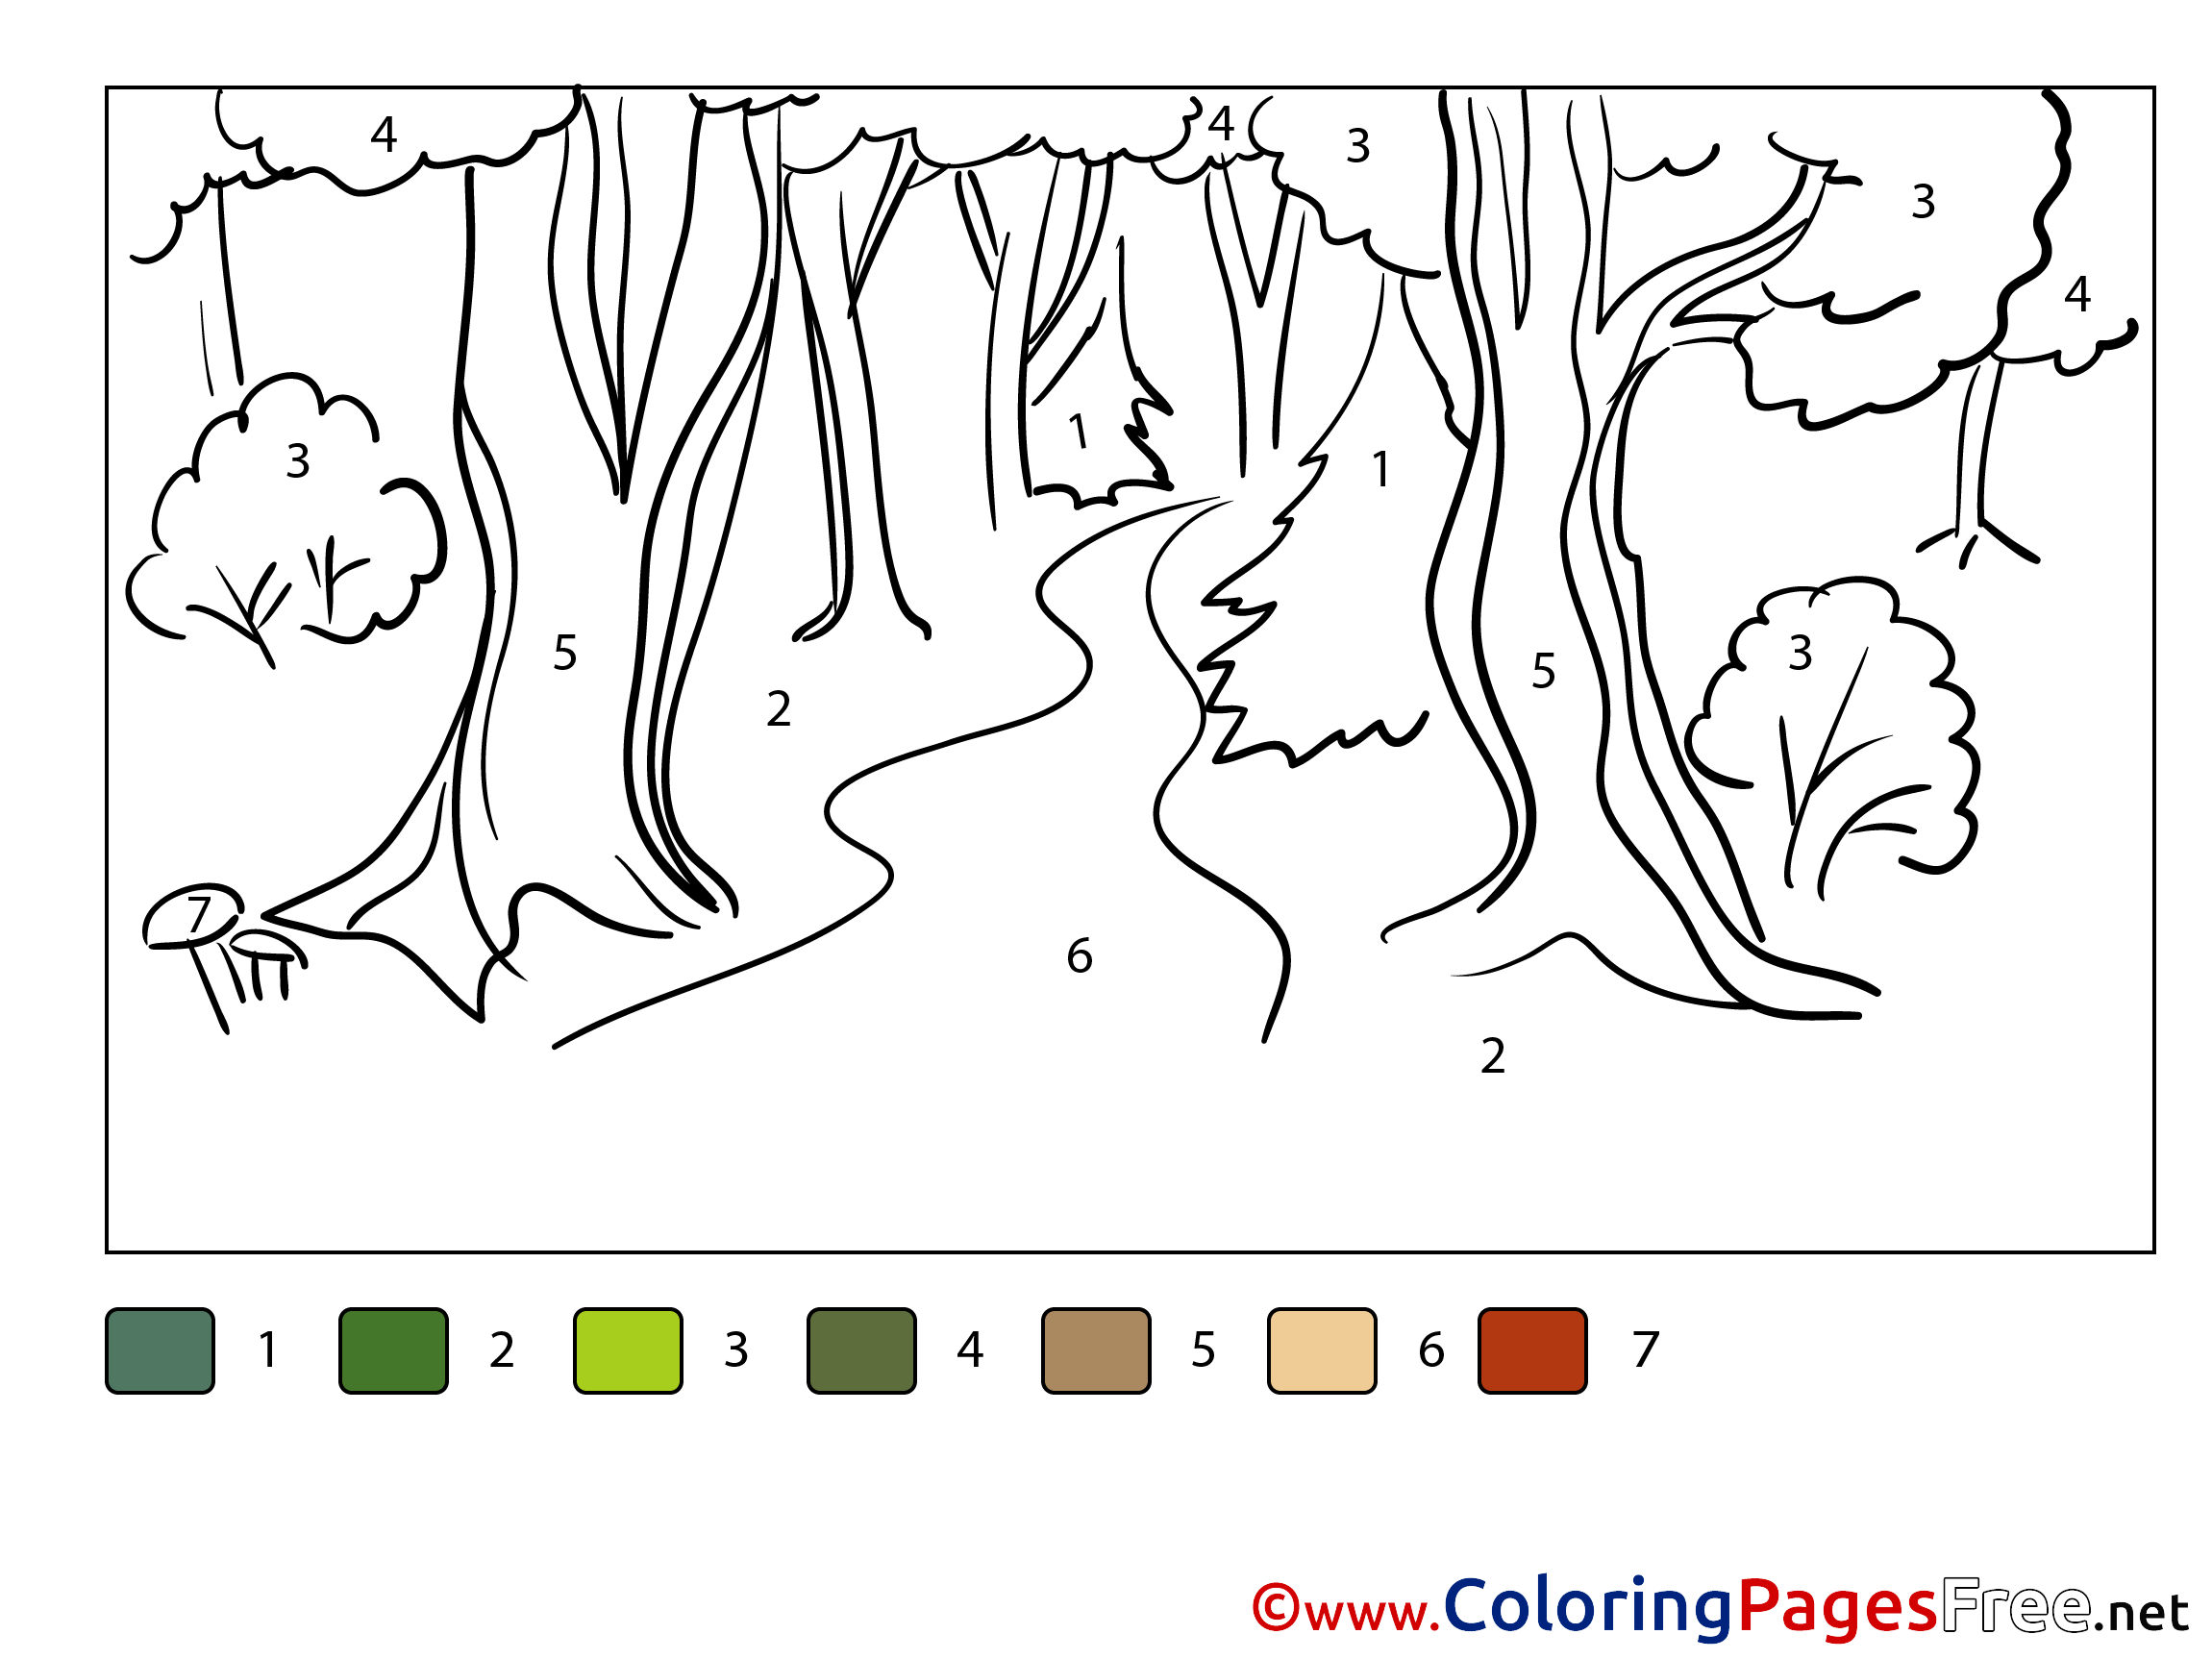 Pathway coloring #1, Download drawings